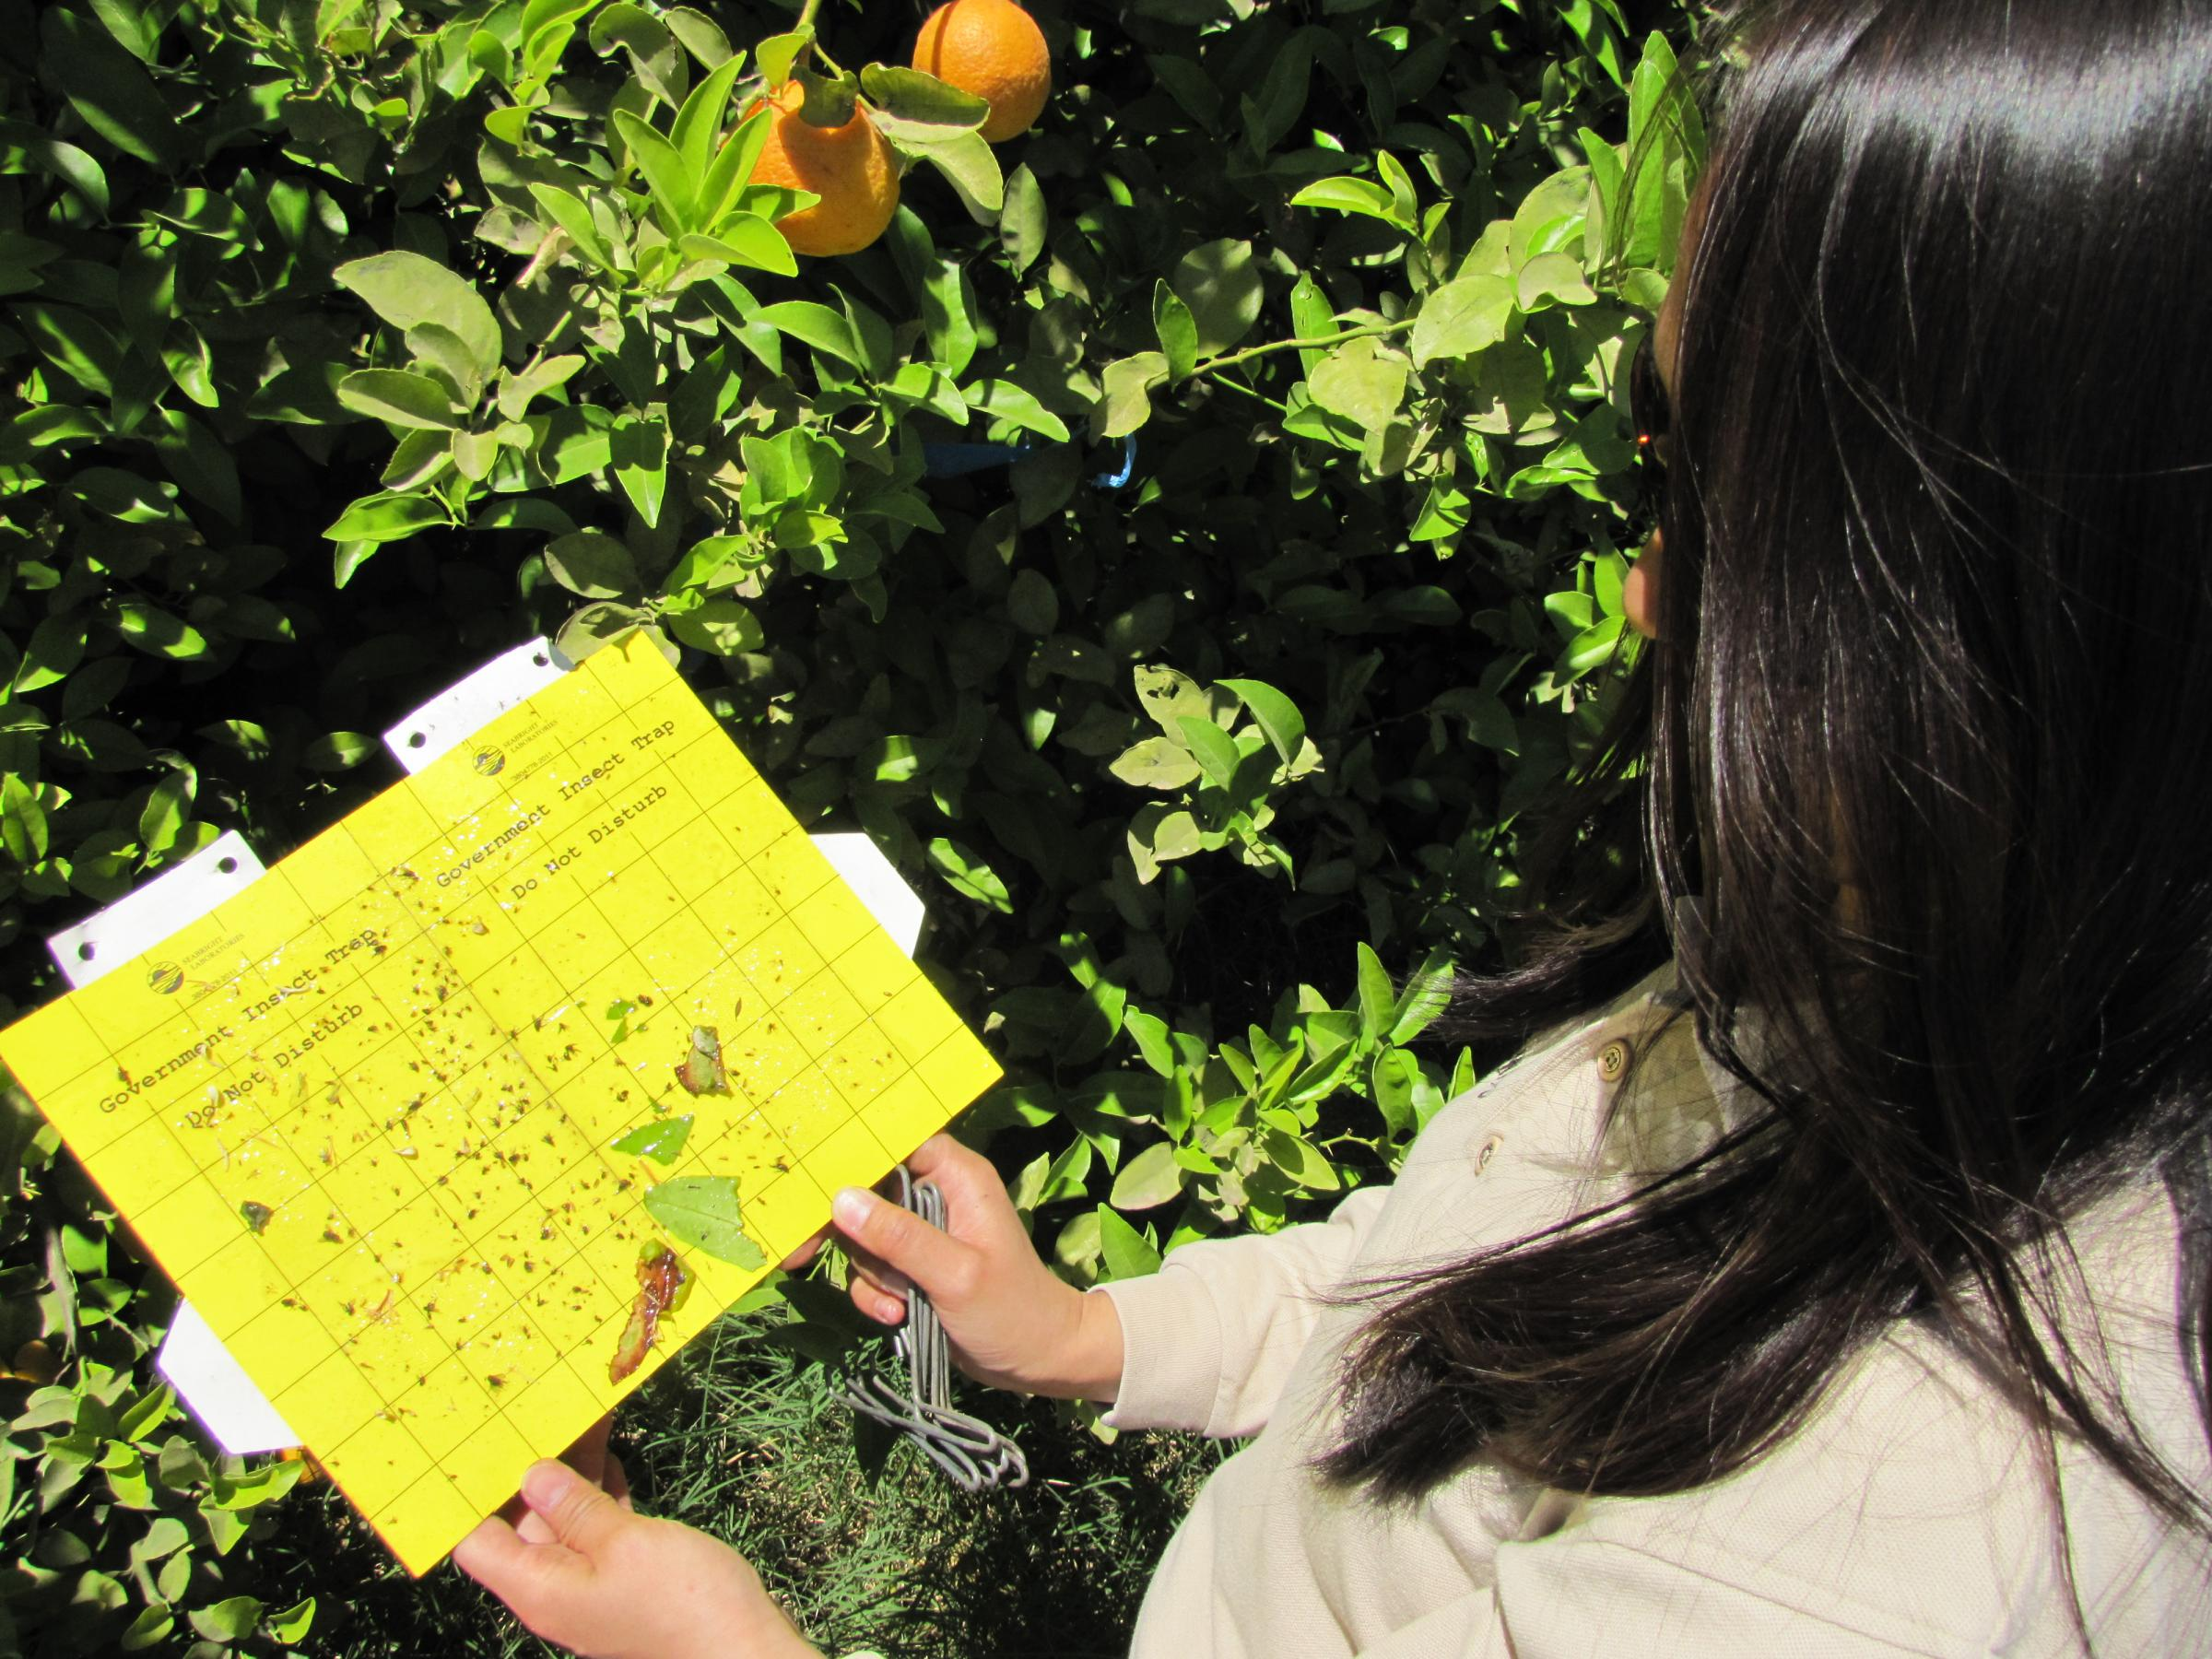 Disease Carrying Insect Threatens Yuma Citrus Industry Kawc